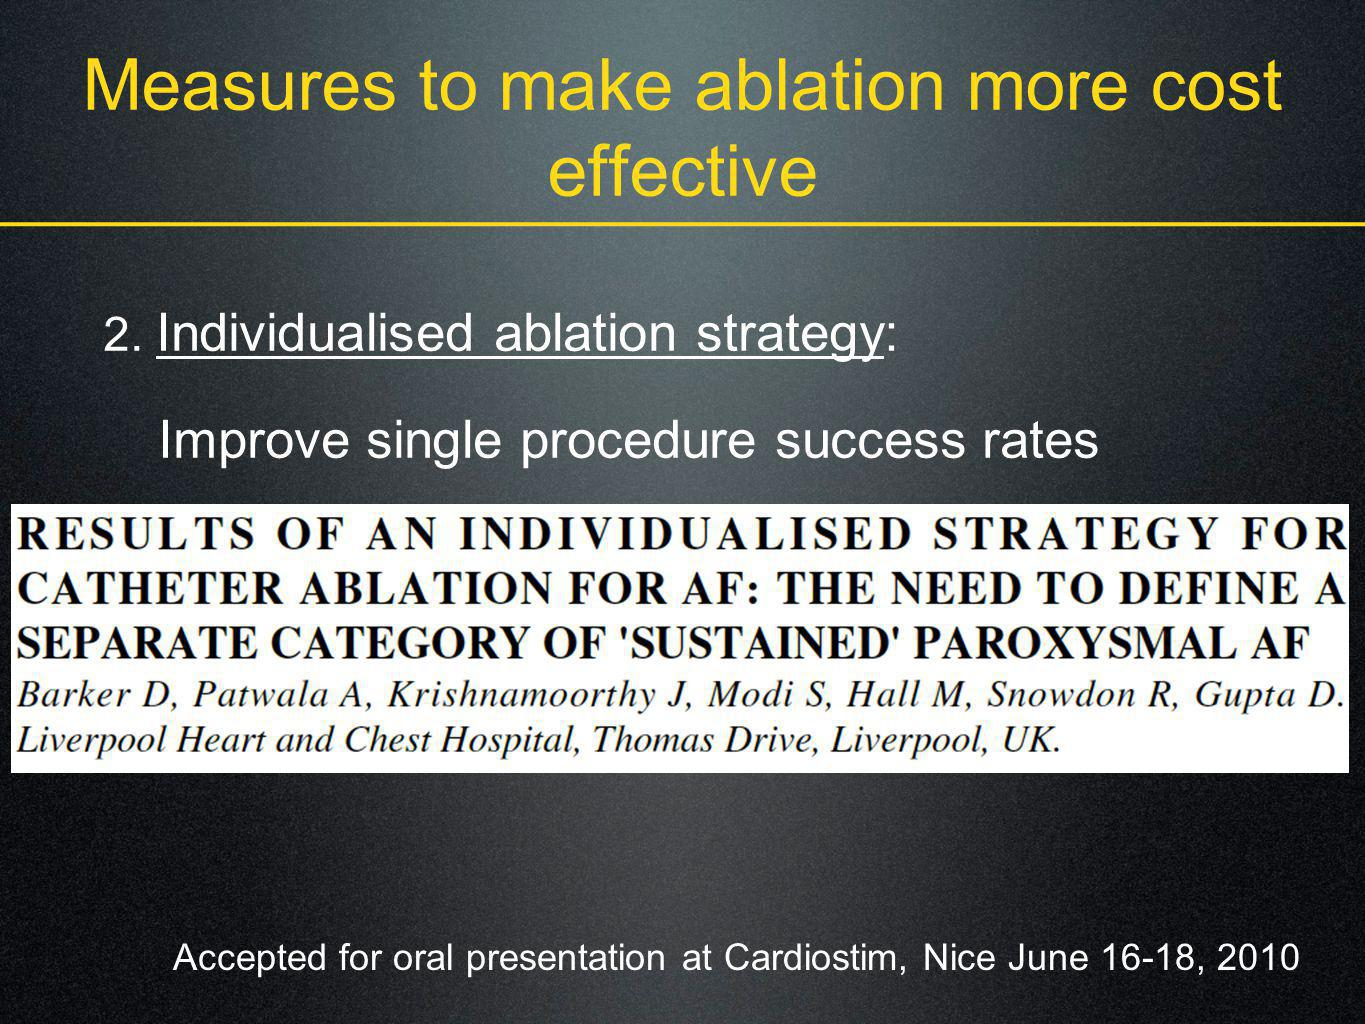 Measures to make ablation more cost effective